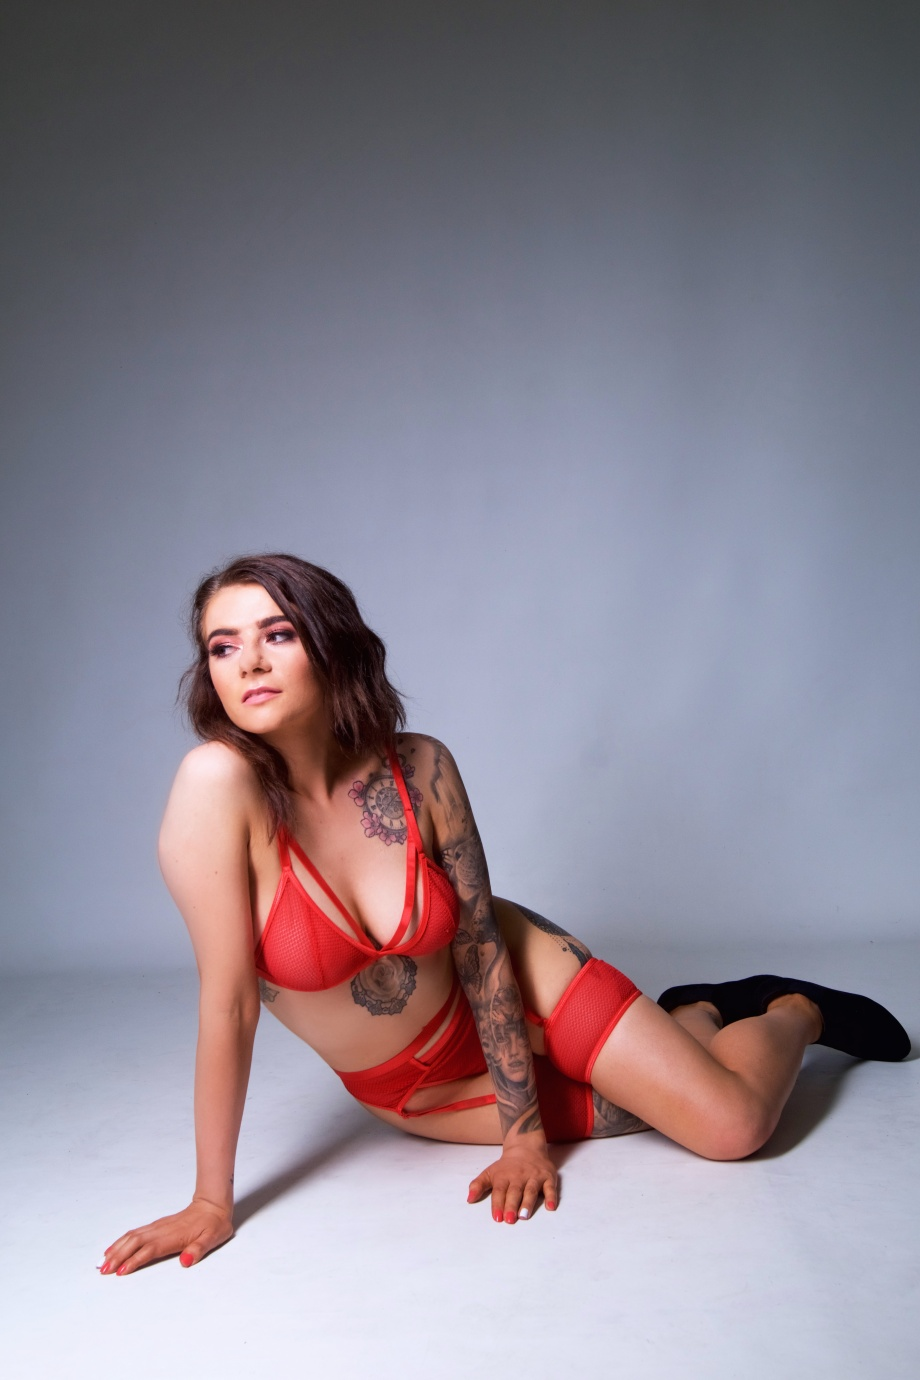 glamour, cork, studio shoot, boudoir, tattoos, lingerie